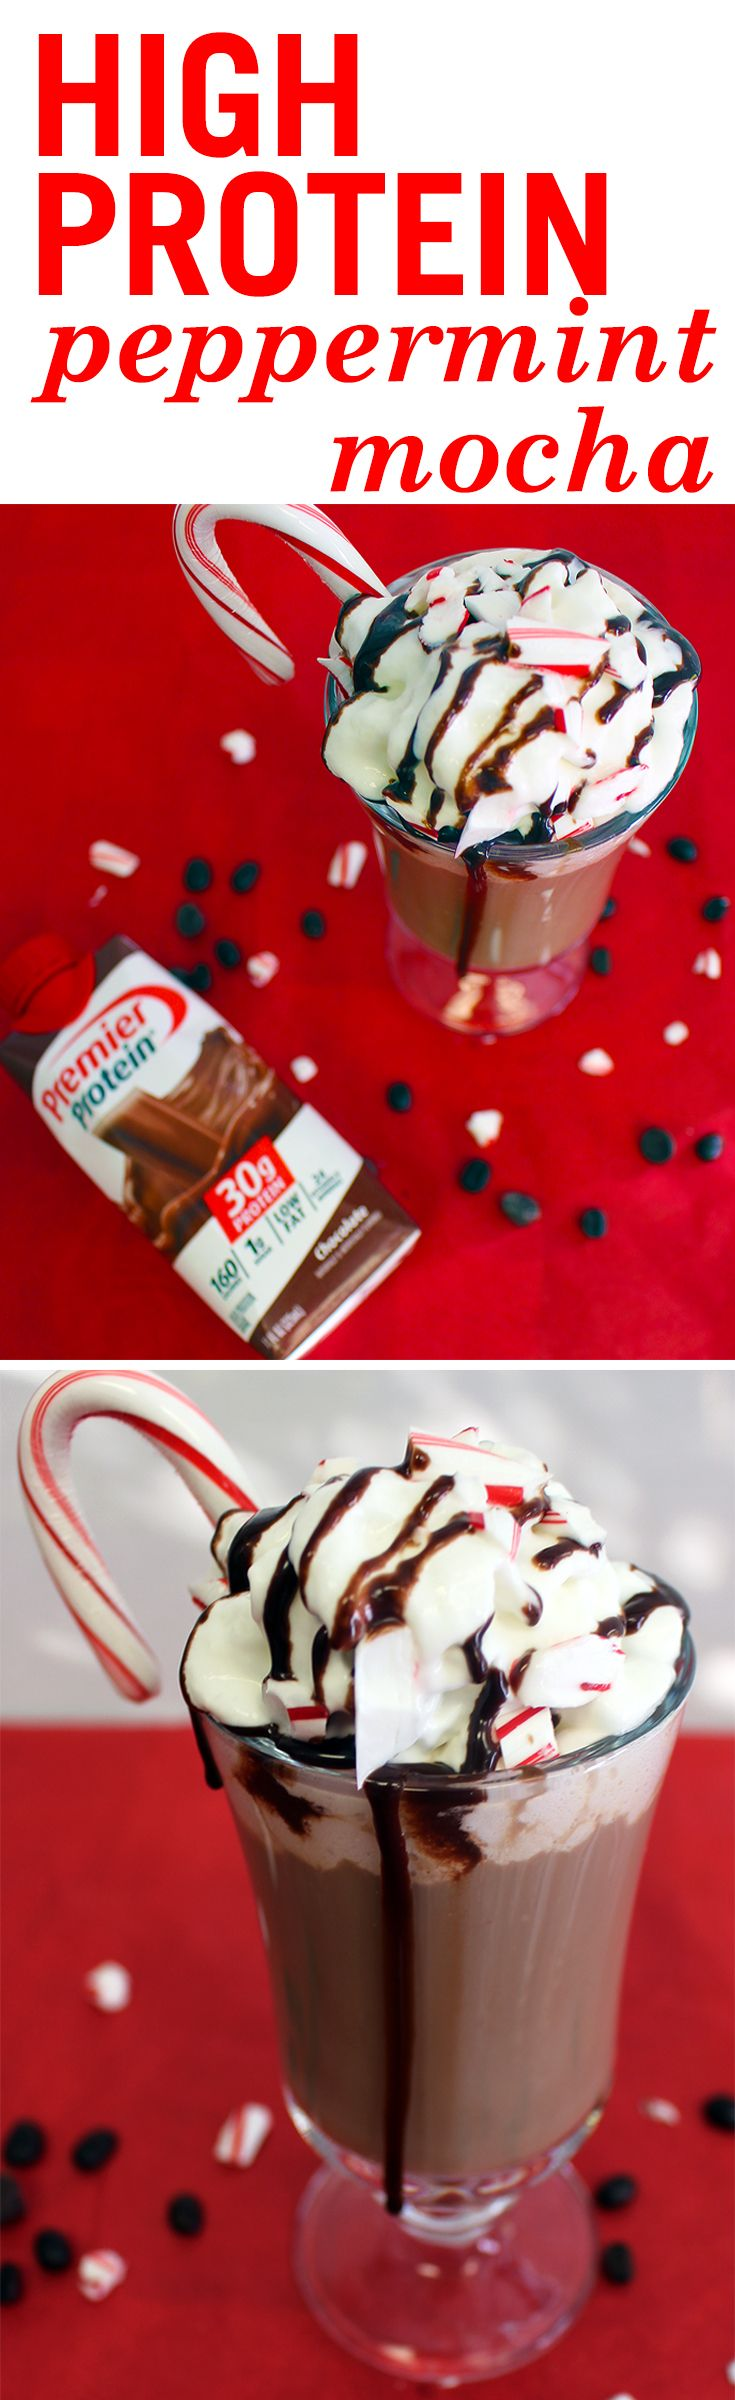 Let the comfort of crisp peppermint and chocolatey mocha flavors warm you up during this cold winter season. Ingredients:  1 Premier Protein Chocolate Shake  3 tsp sugar free chocolate syrup or topping  1 serving instant coffee  1/2 tsp peppermint extract, more or less to taste   Pour shake & syrup into a large mug, microwave for approx. 45 seconds. Add peppermint and coffee, and enjoy!